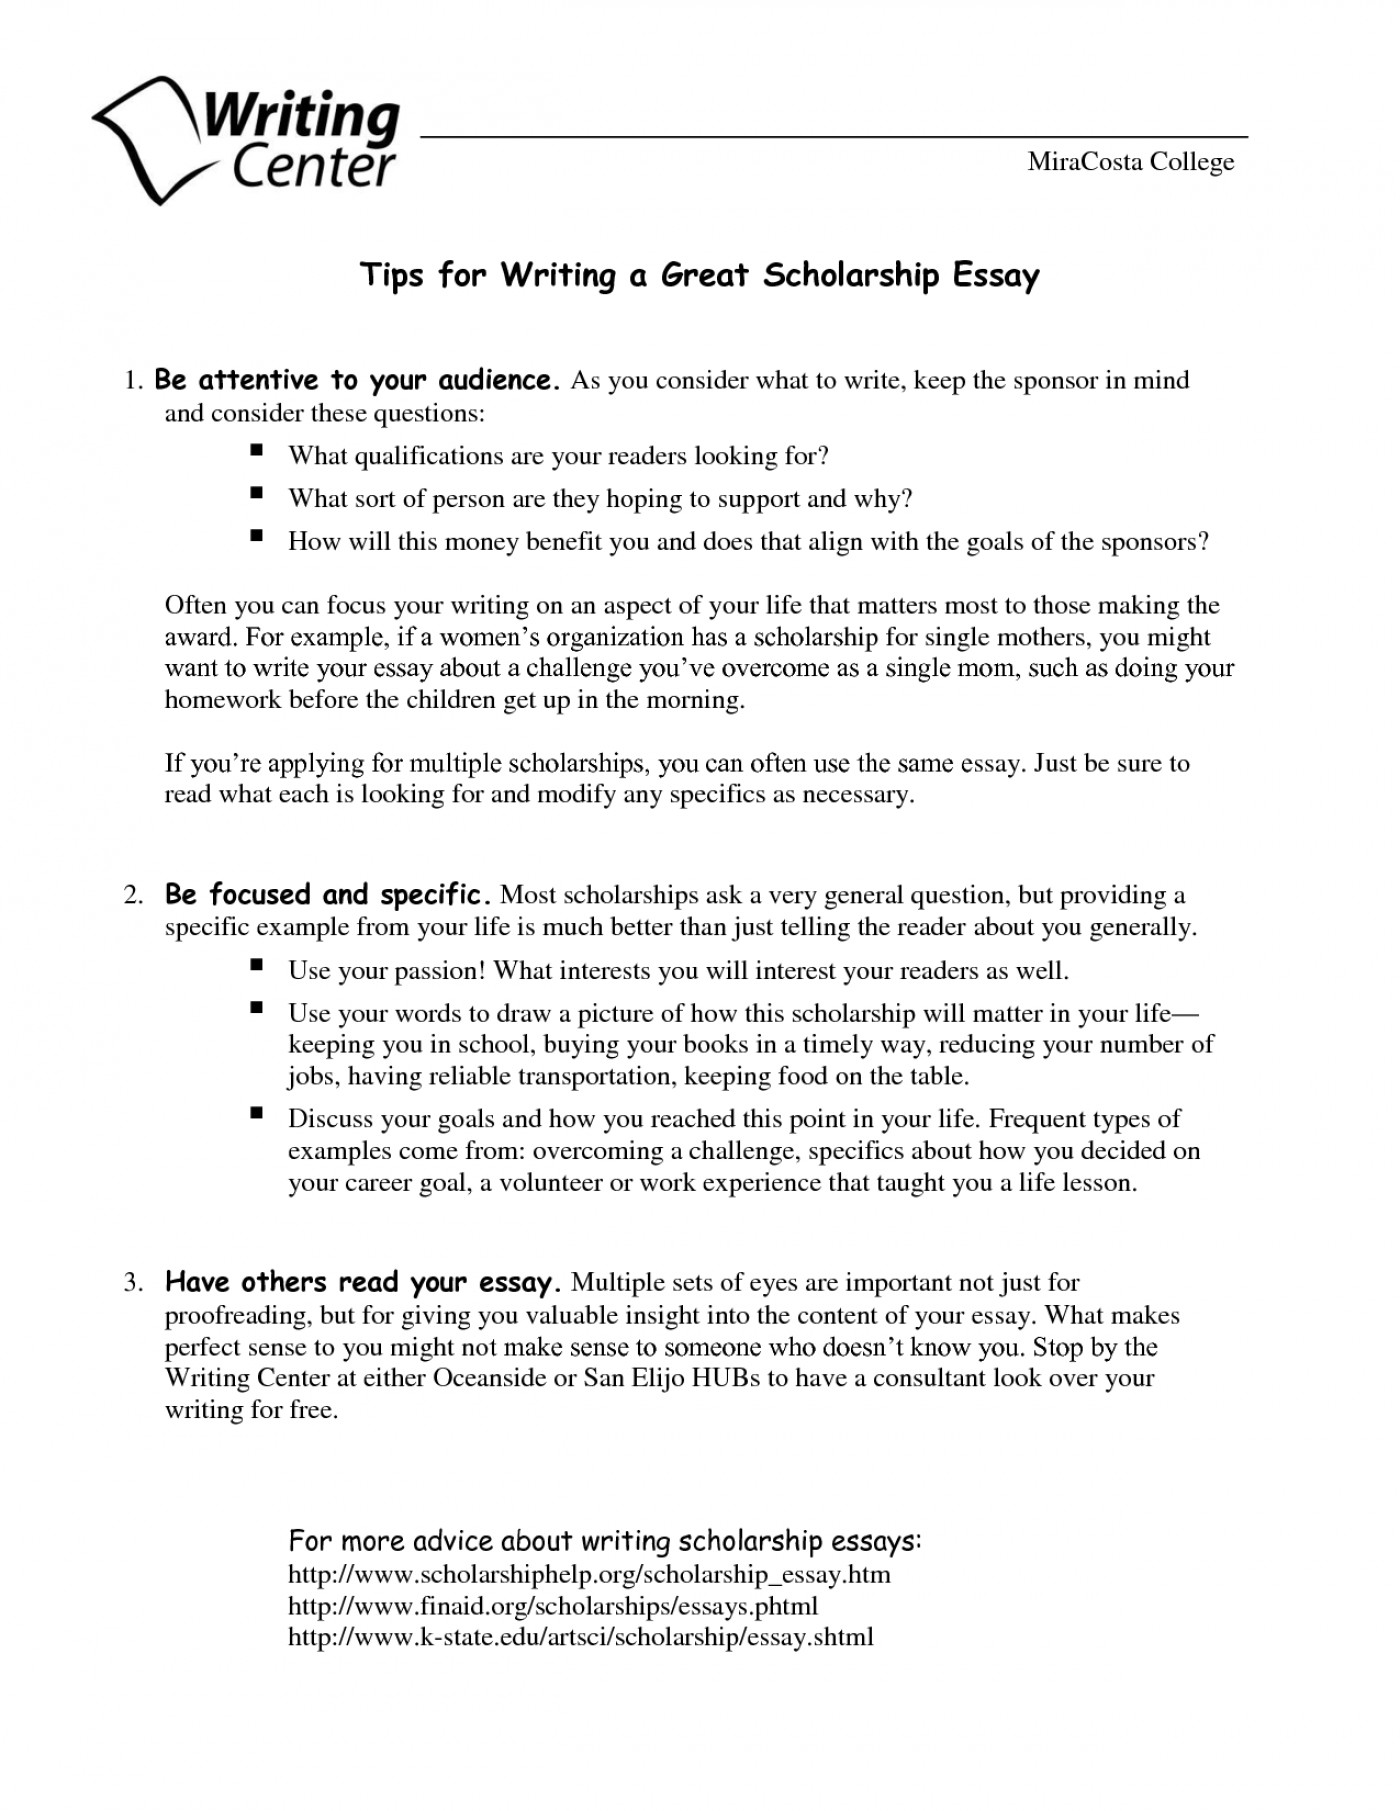 Essay questions for students and comparison of data